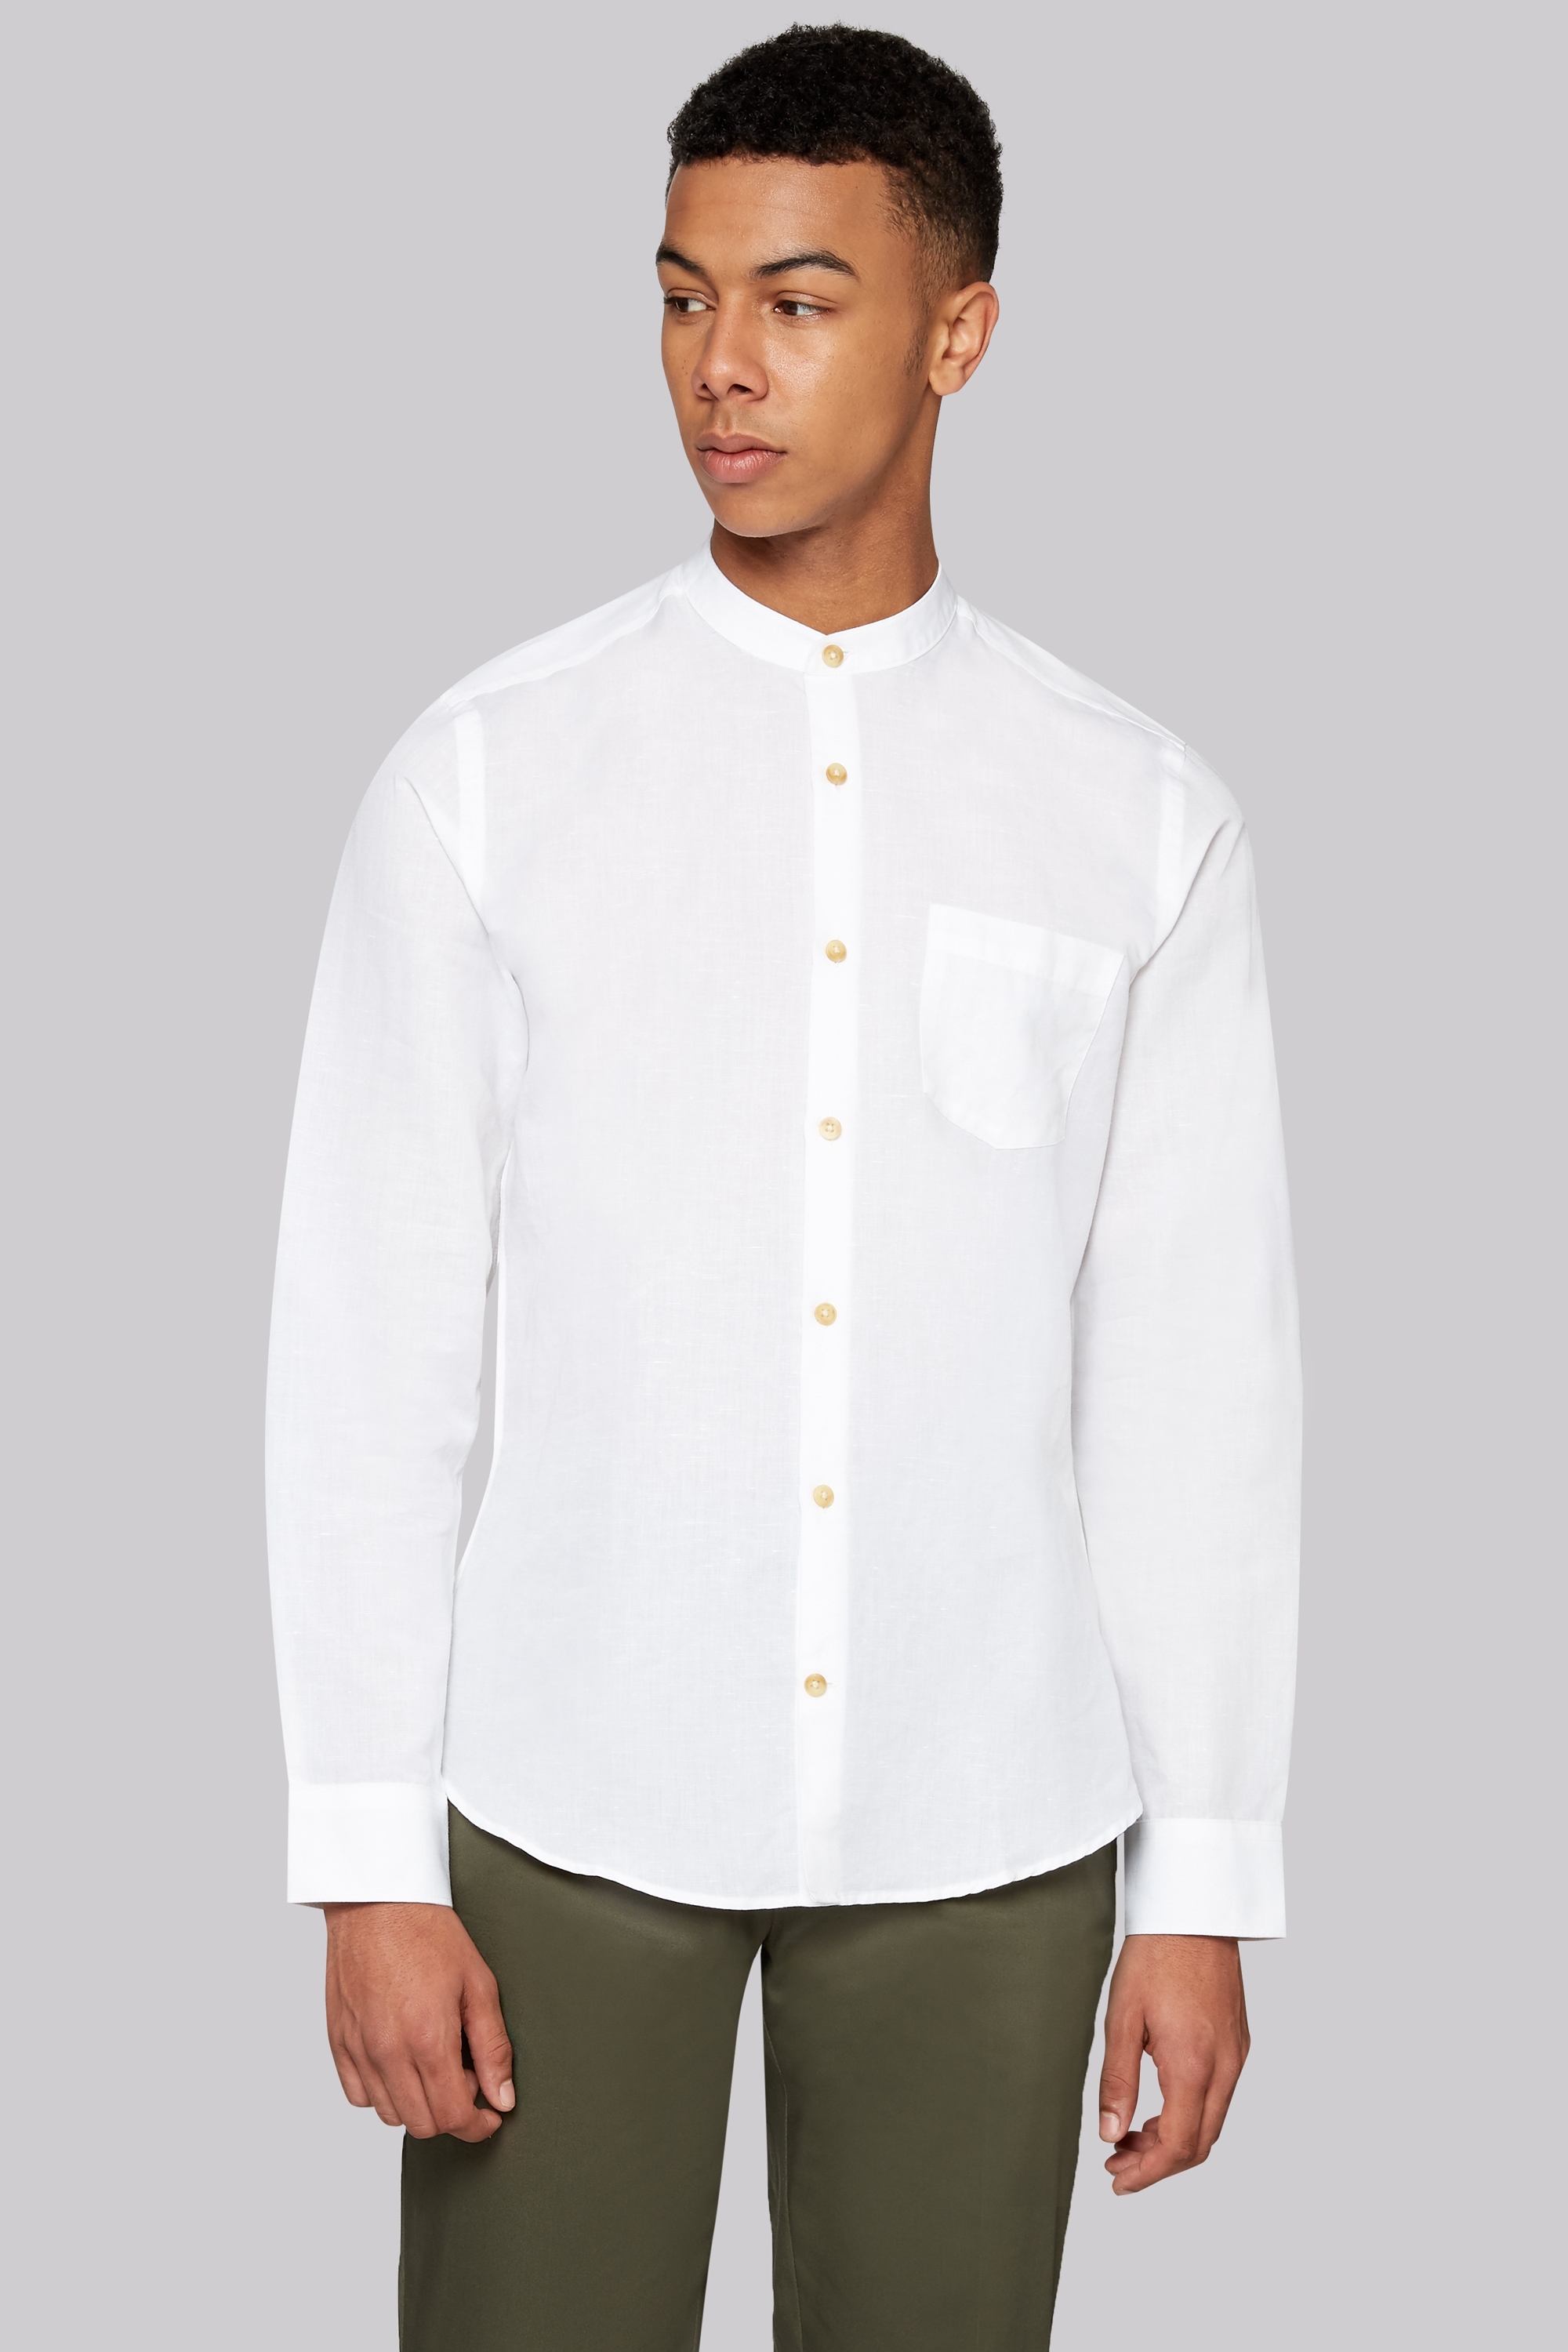 ASOS DESIGN slim shirt in white with grandad collar and contrast buttons. $ ASOS DESIGN skinny shirt in black with grandad collar. $ Emporio Armani slim fit grandad collar shirt with all over flocked logo in black. $ Farah Brewer slim fit grandad collar oxford shirt in white.